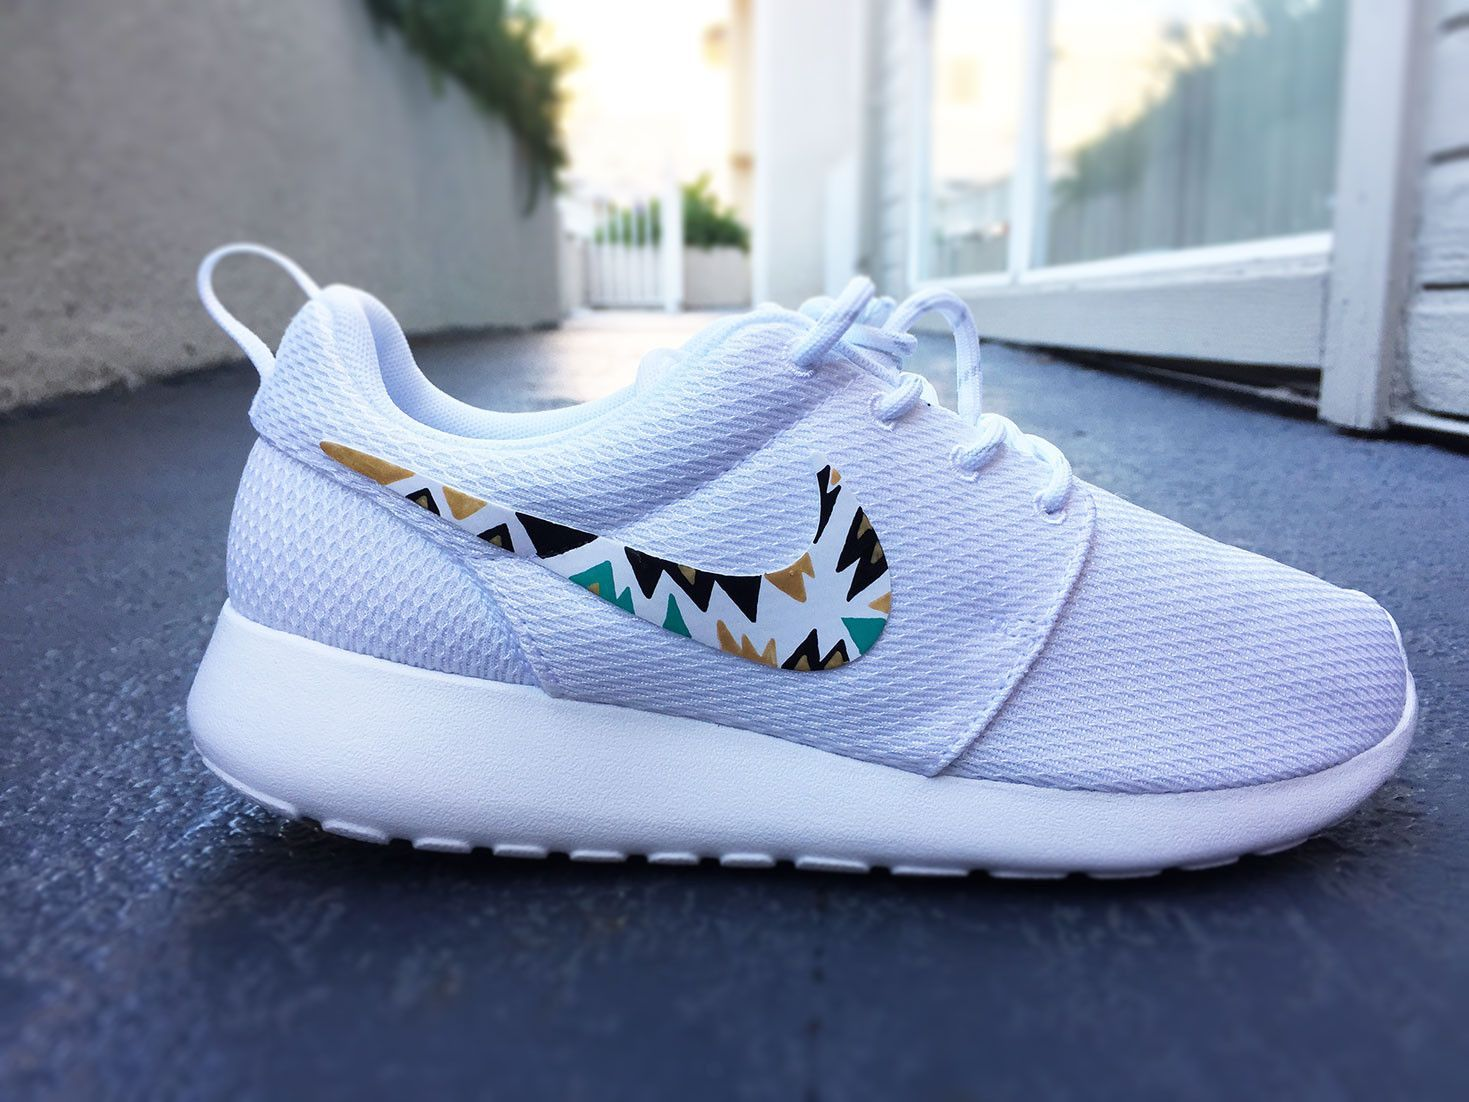 quality design 45c8c 7bc77 Custom Nike Roshe Run sneakers for women, All white, Black and Gold,  Silver, tribal, triangle design, fashionable design